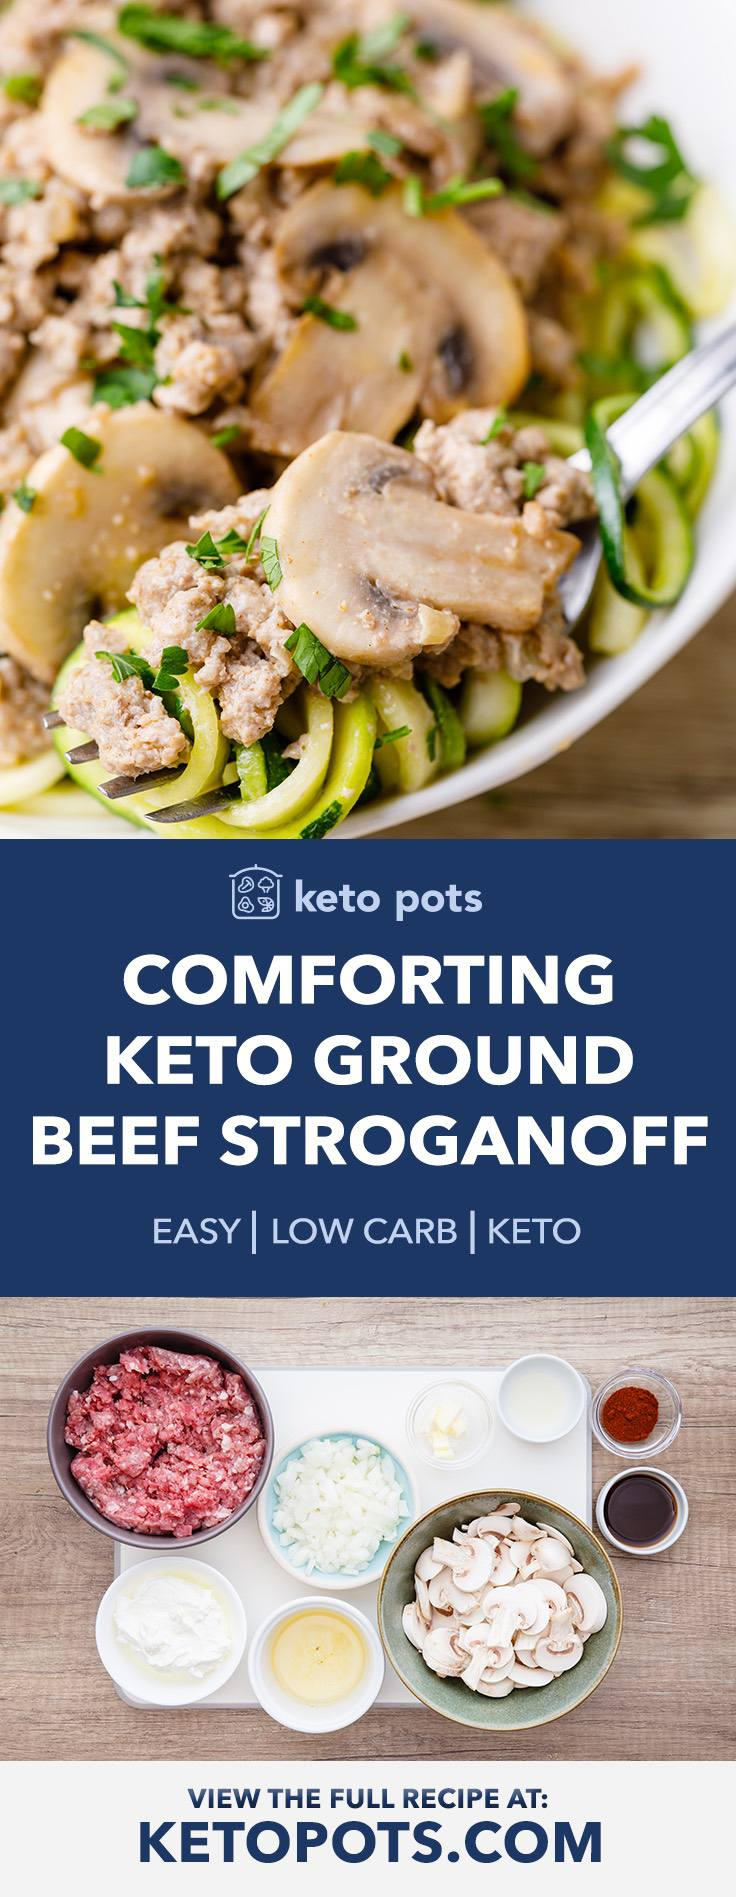 Easy And Comforting Keto Ground Beef Stroganoff